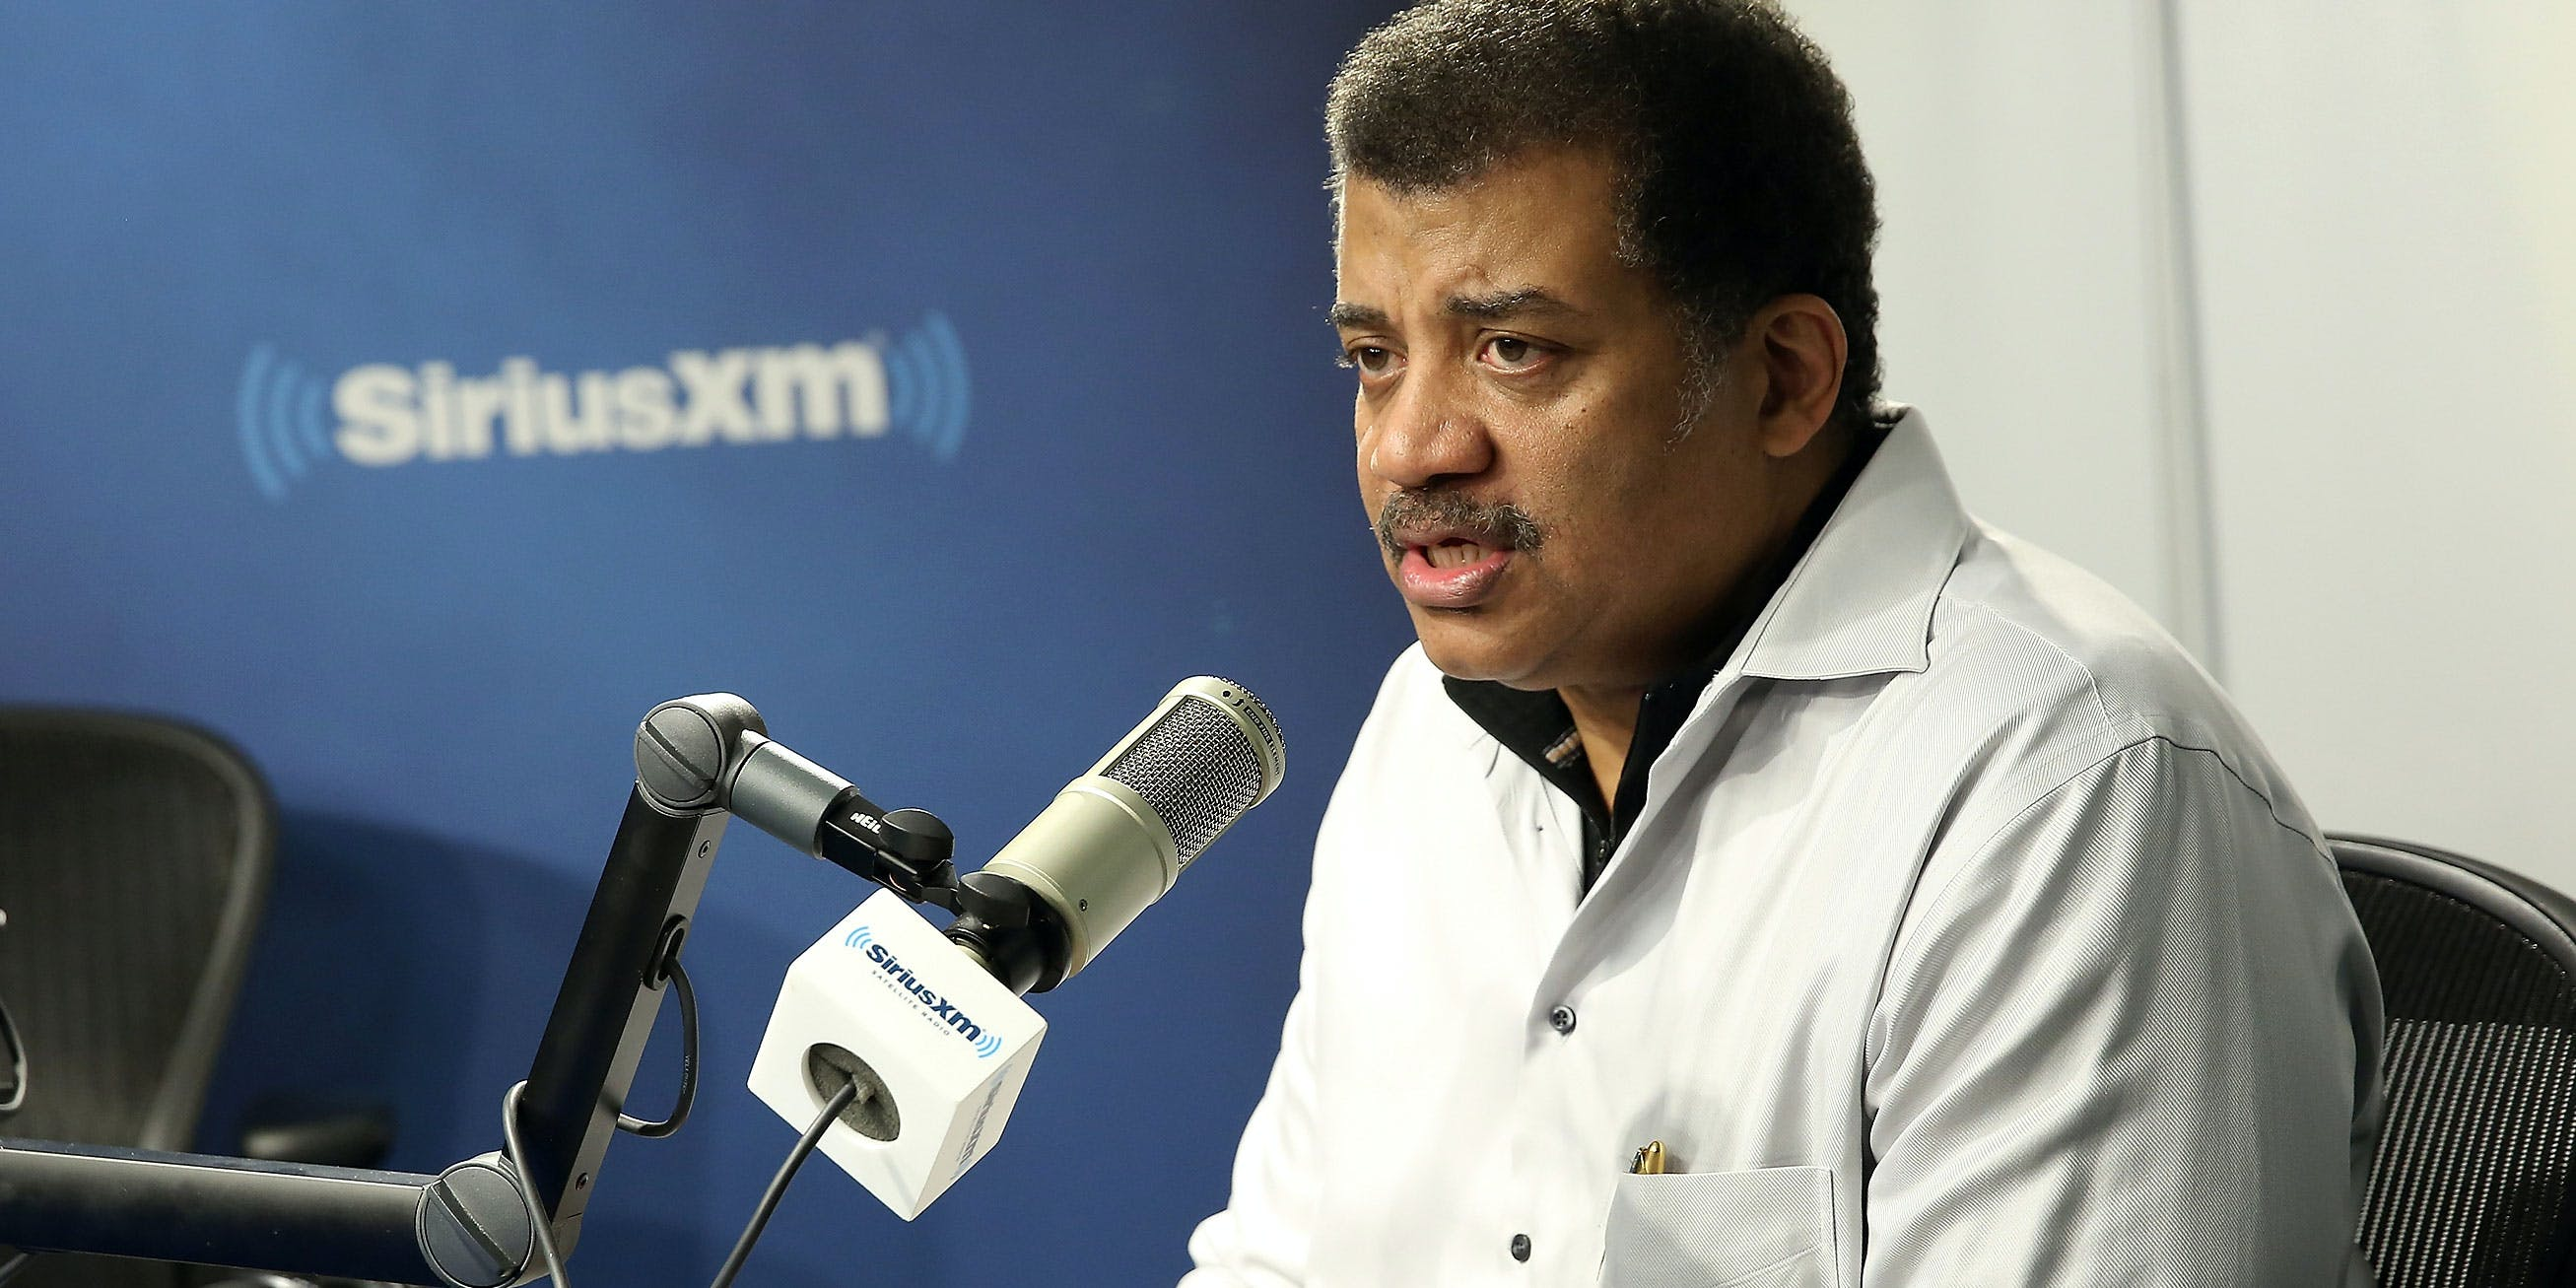 Astrophysicist Neil deGrasse Tyson visits SiriusXM Studios on November 13, 2017 in New York City. He recently defended Elon Musk smoking weed.